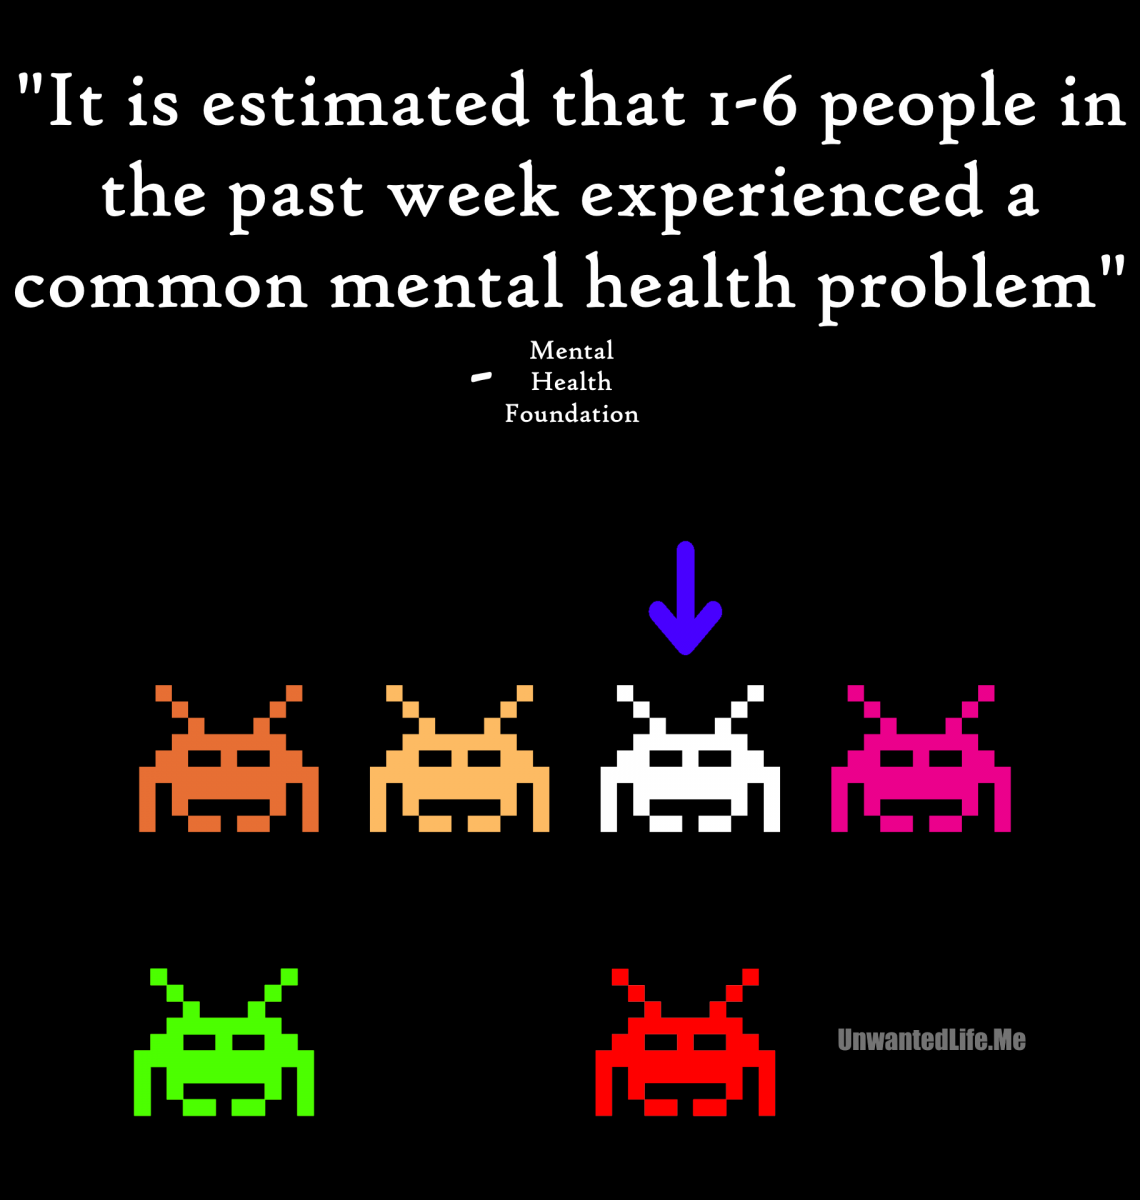 1 in 6 Mental Health Unwanted Life | Mental Health and Wellness